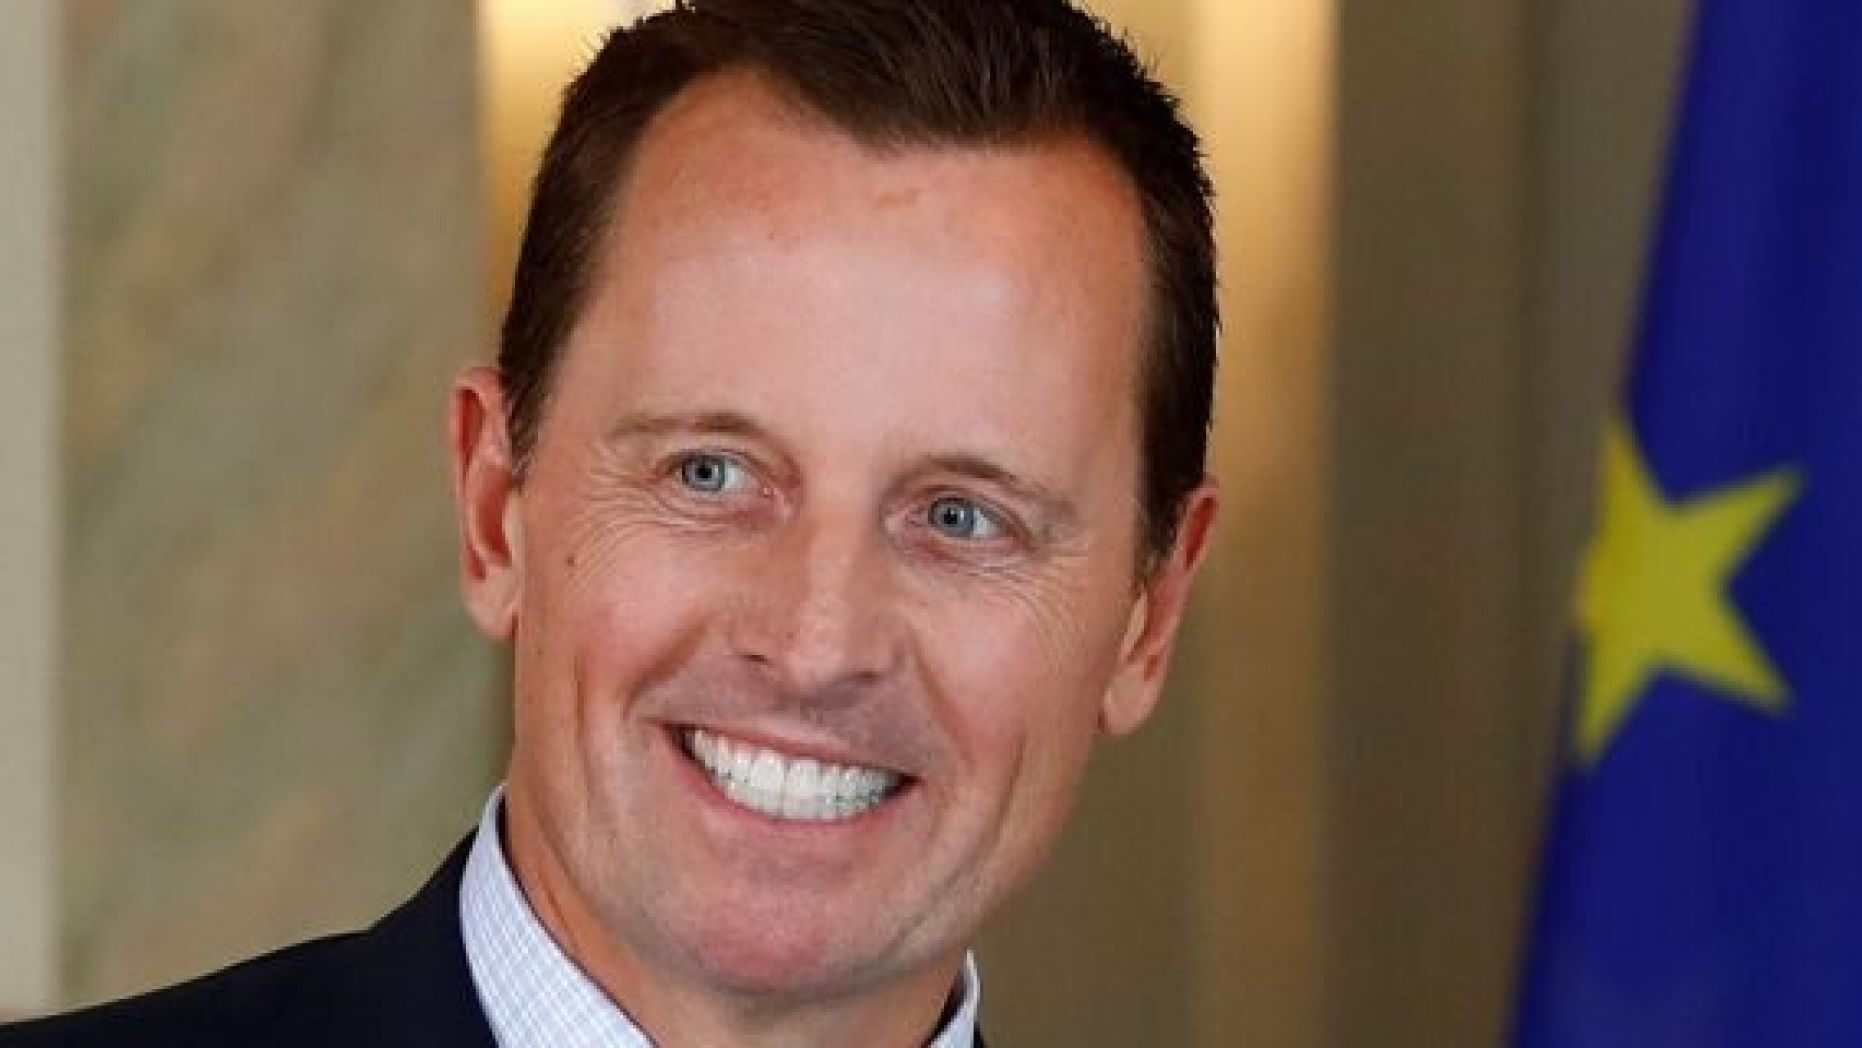 Grenell: There are no plans for a 'quick deal'